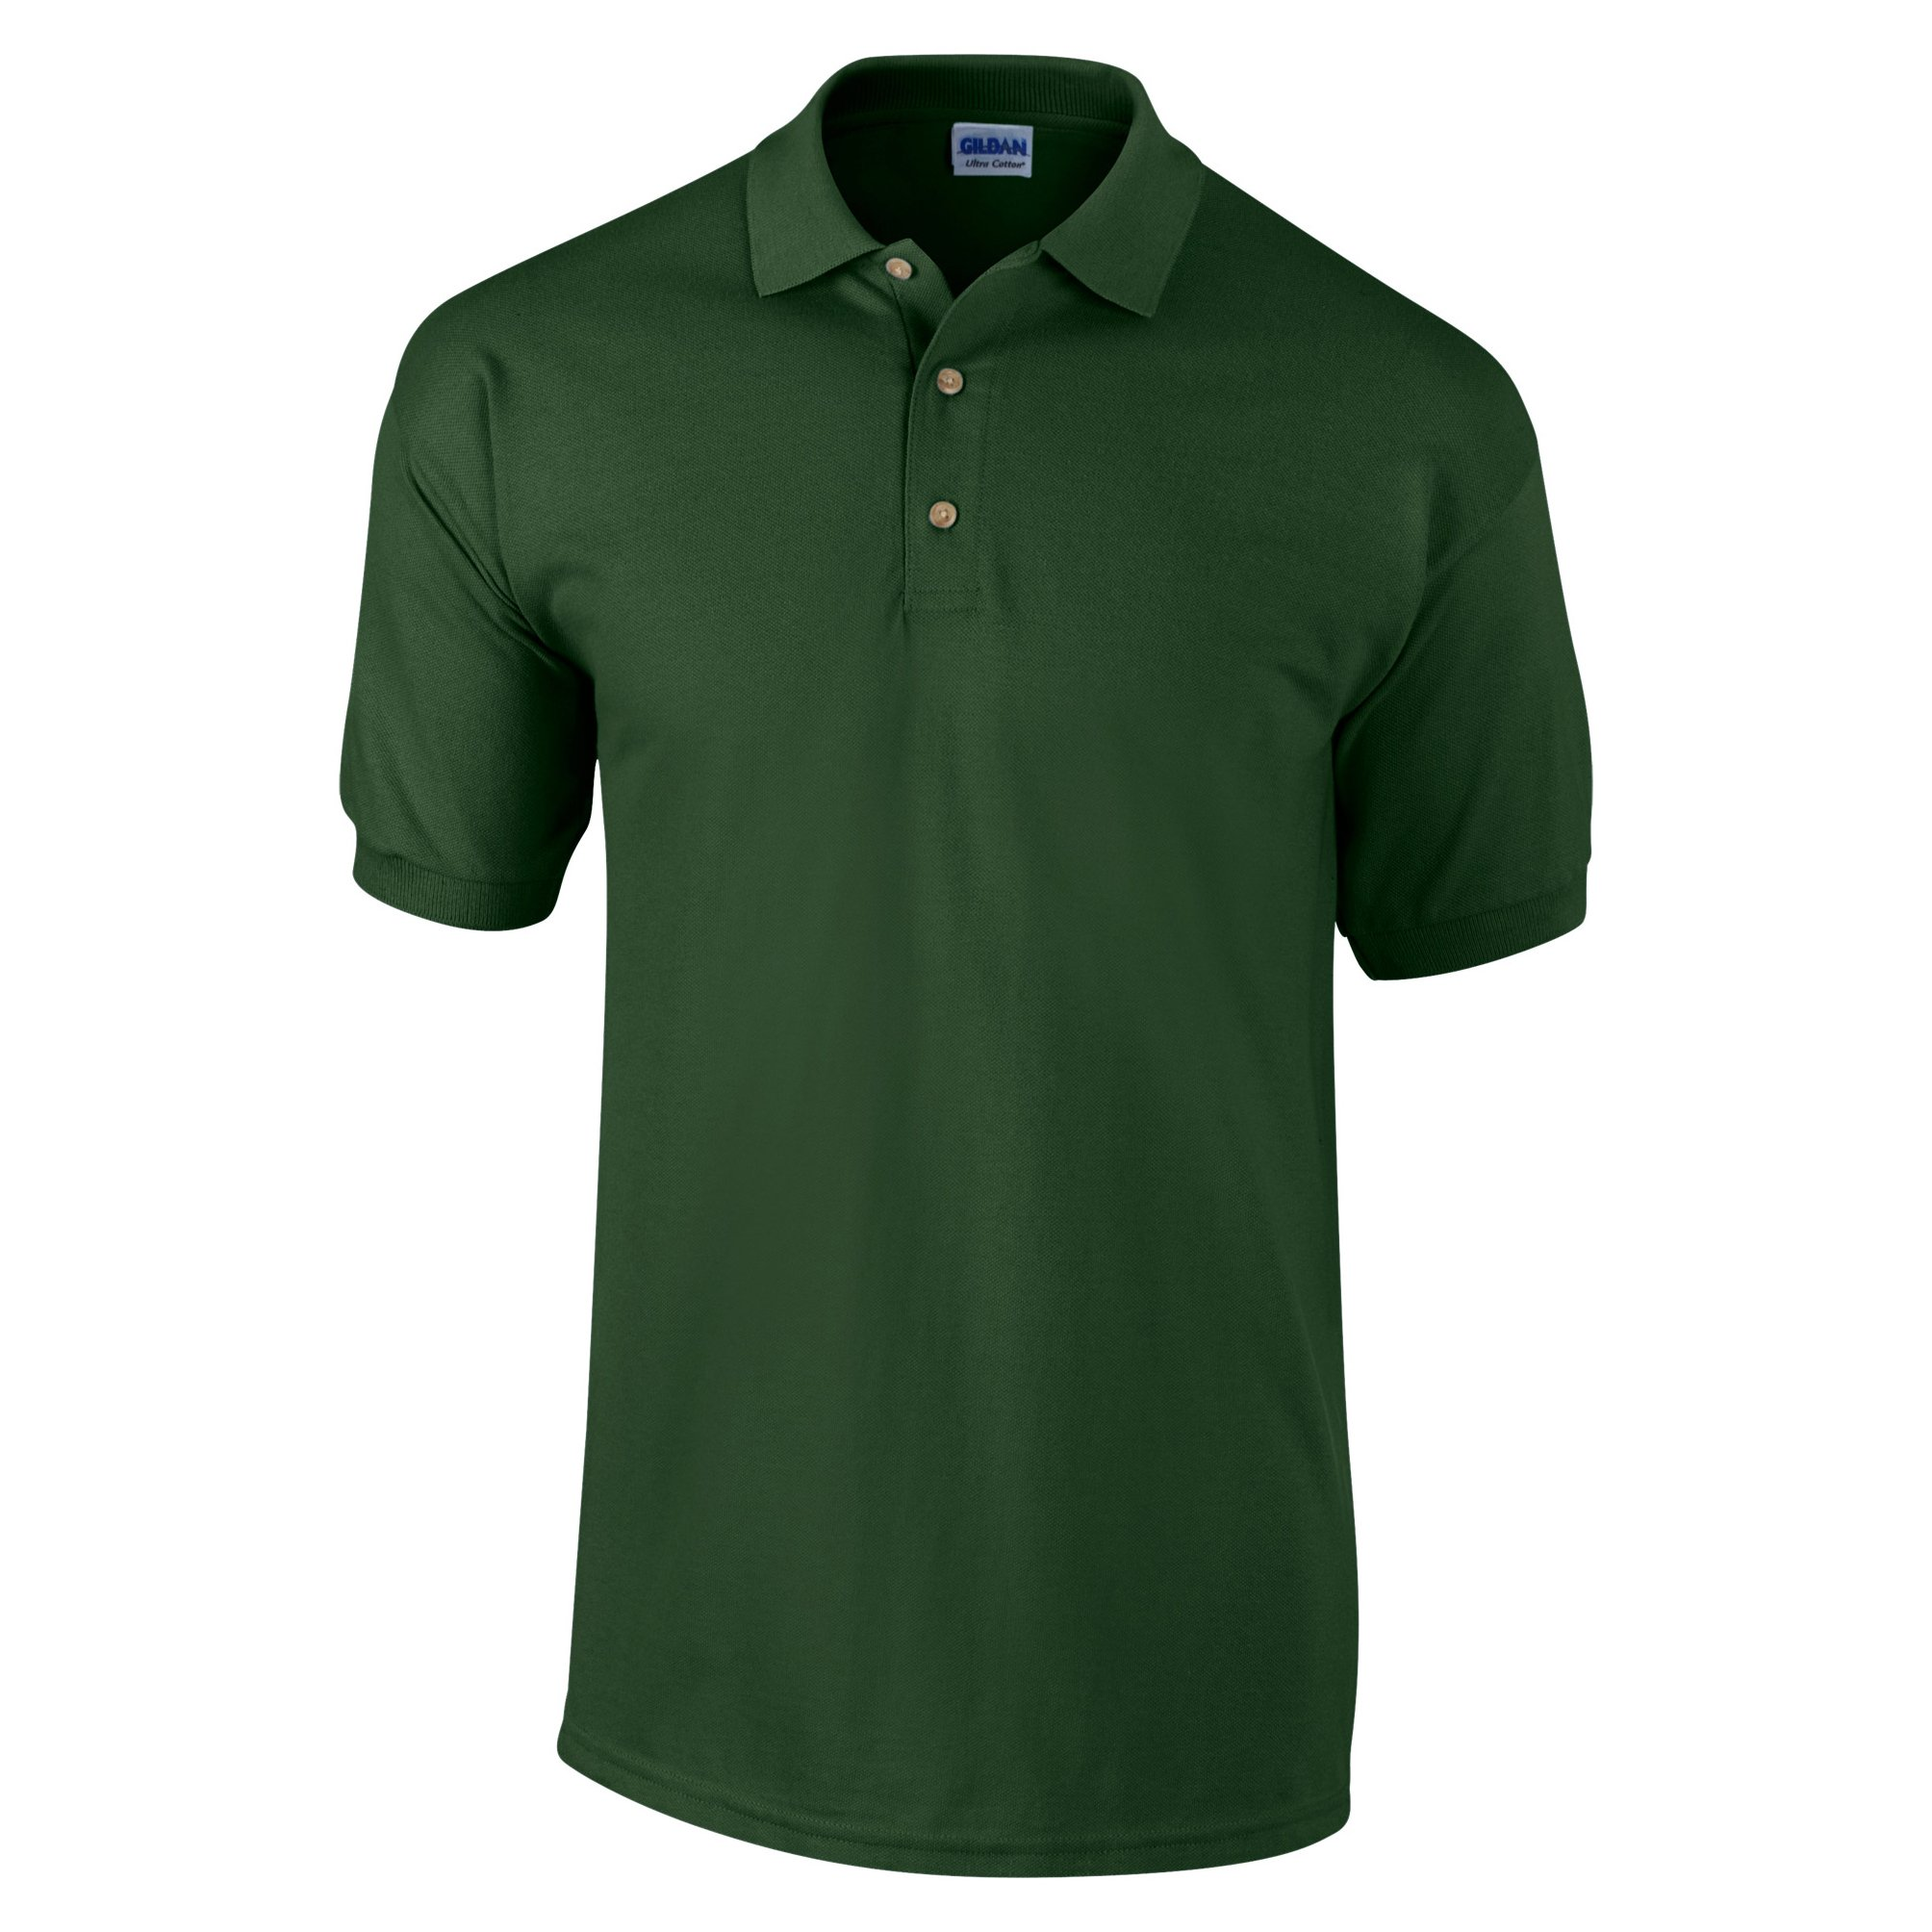 Gildan Mens Ultra Cotton Pique Polo Shirt (S) (Forest Green)